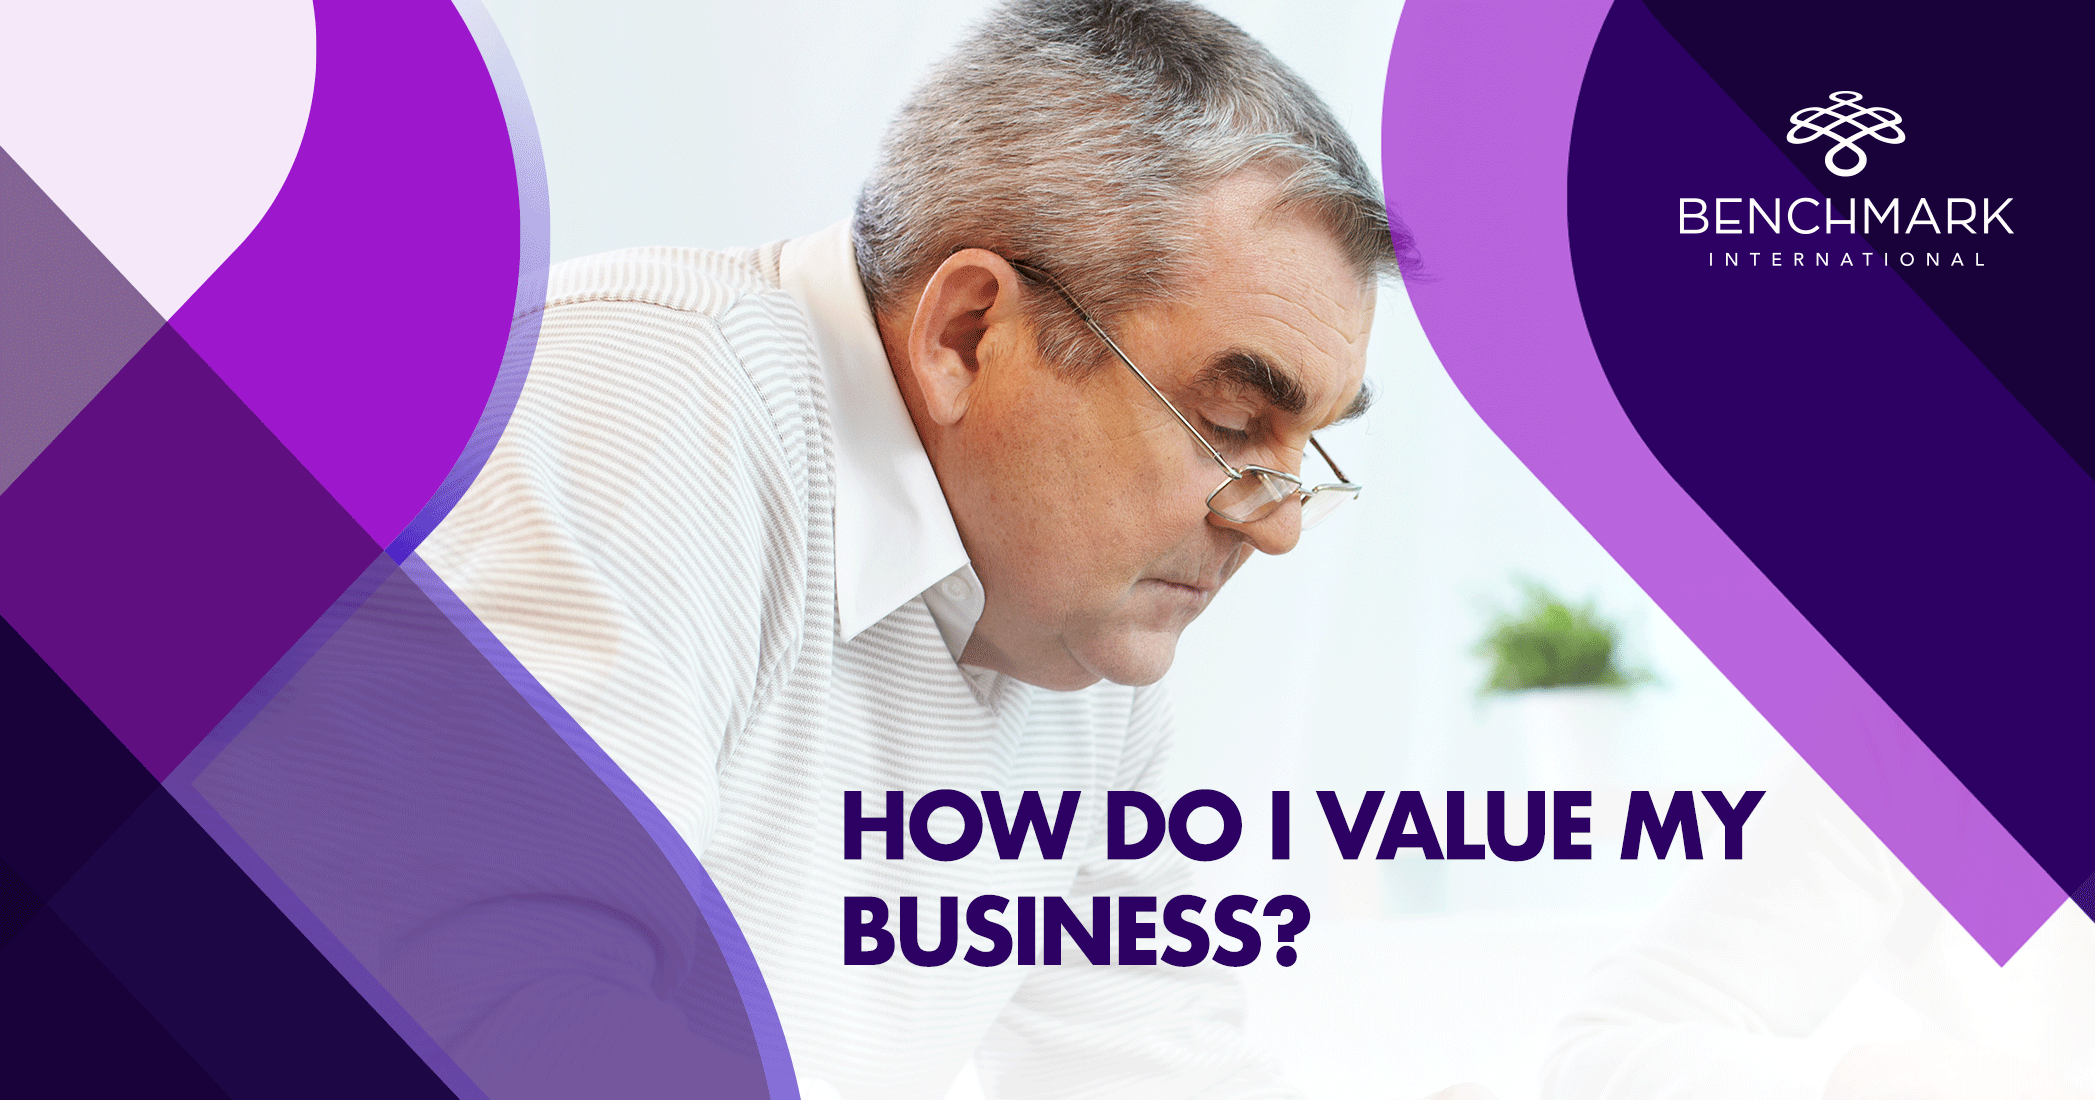 I'm Thinking of Selling My Company, How do I Value My Business